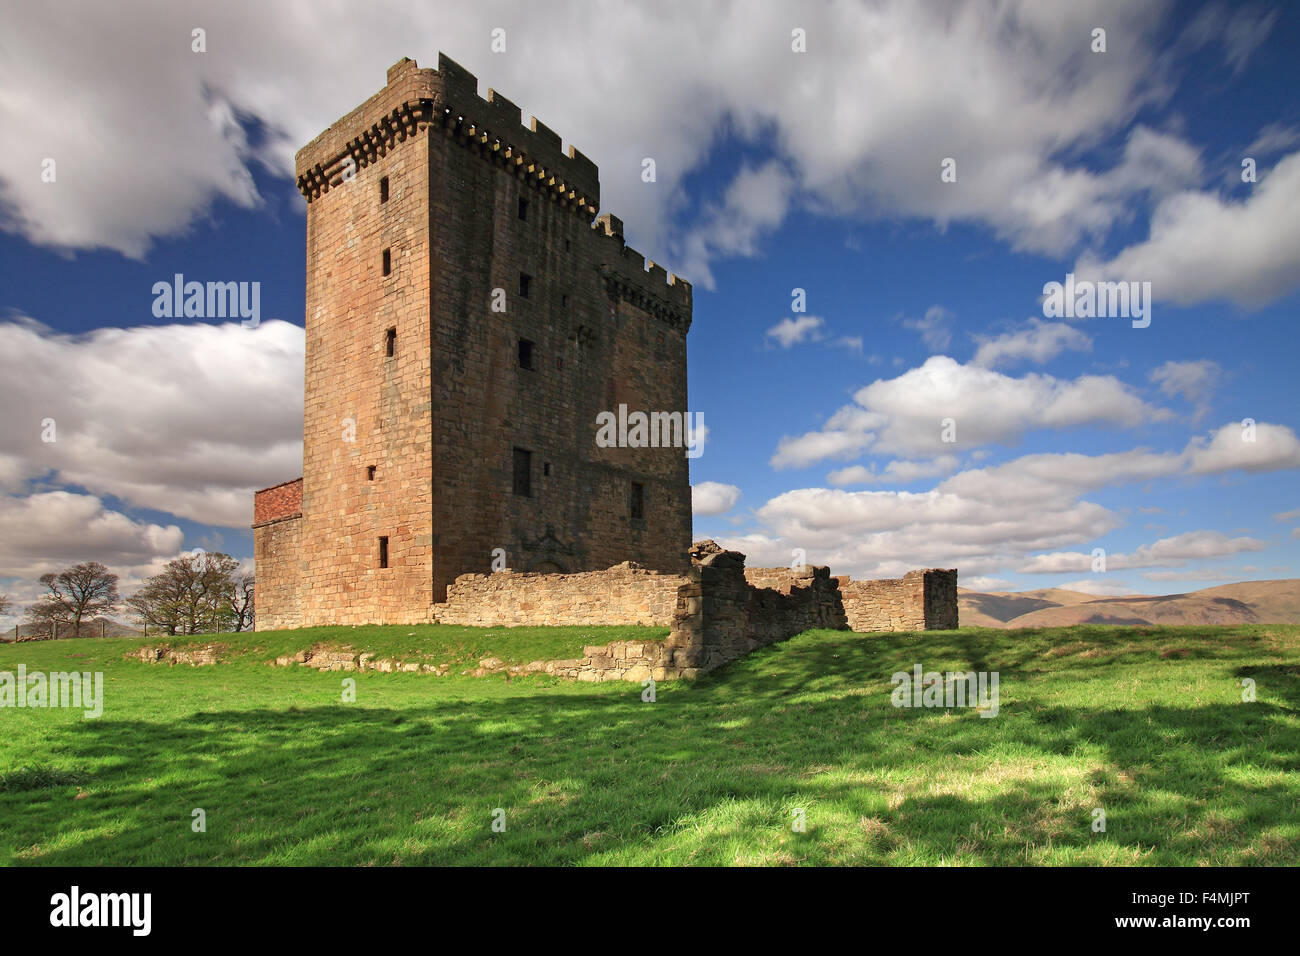 Clackmannan Tower on a sunny day, half in shade - Stock Image